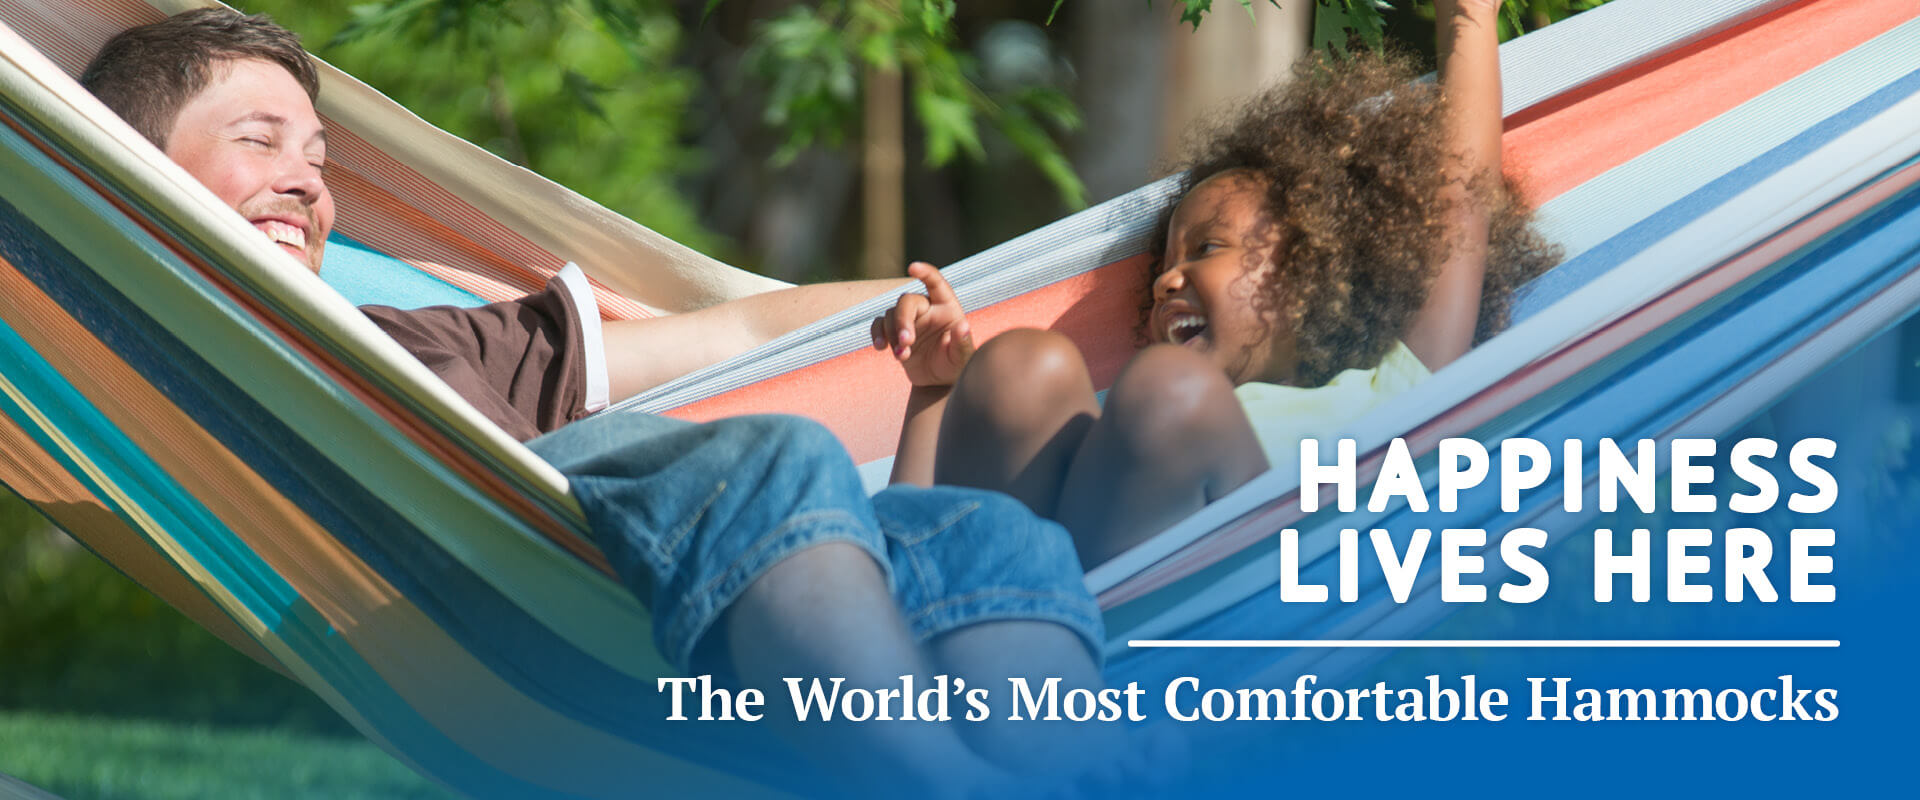 Happiness Lives Here: LA SIESTA Hammocks, Hanging Chairs, Stands